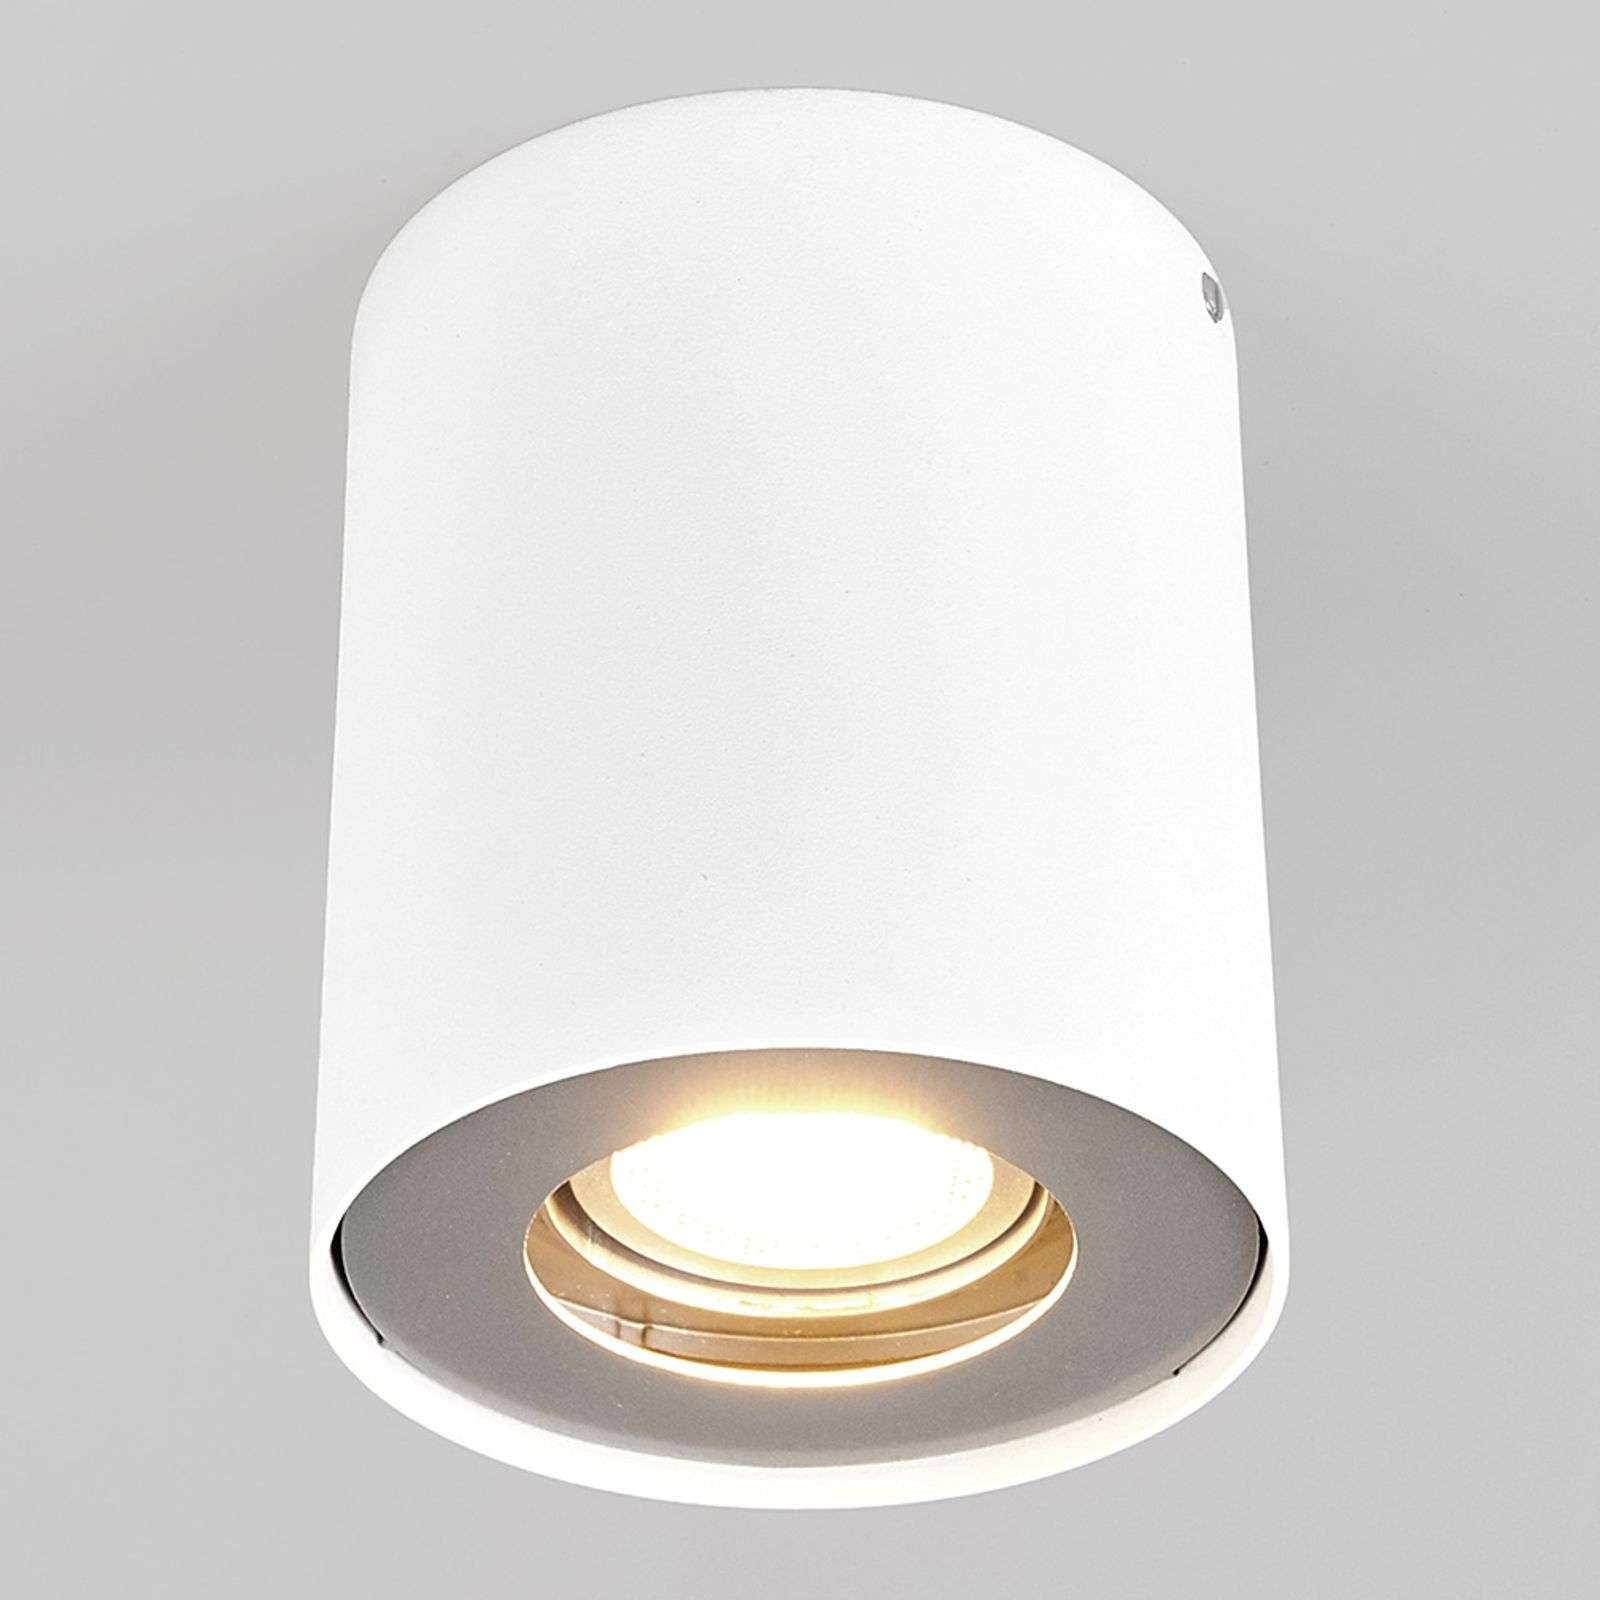 Downlight LED GU10 Giliano, blanc